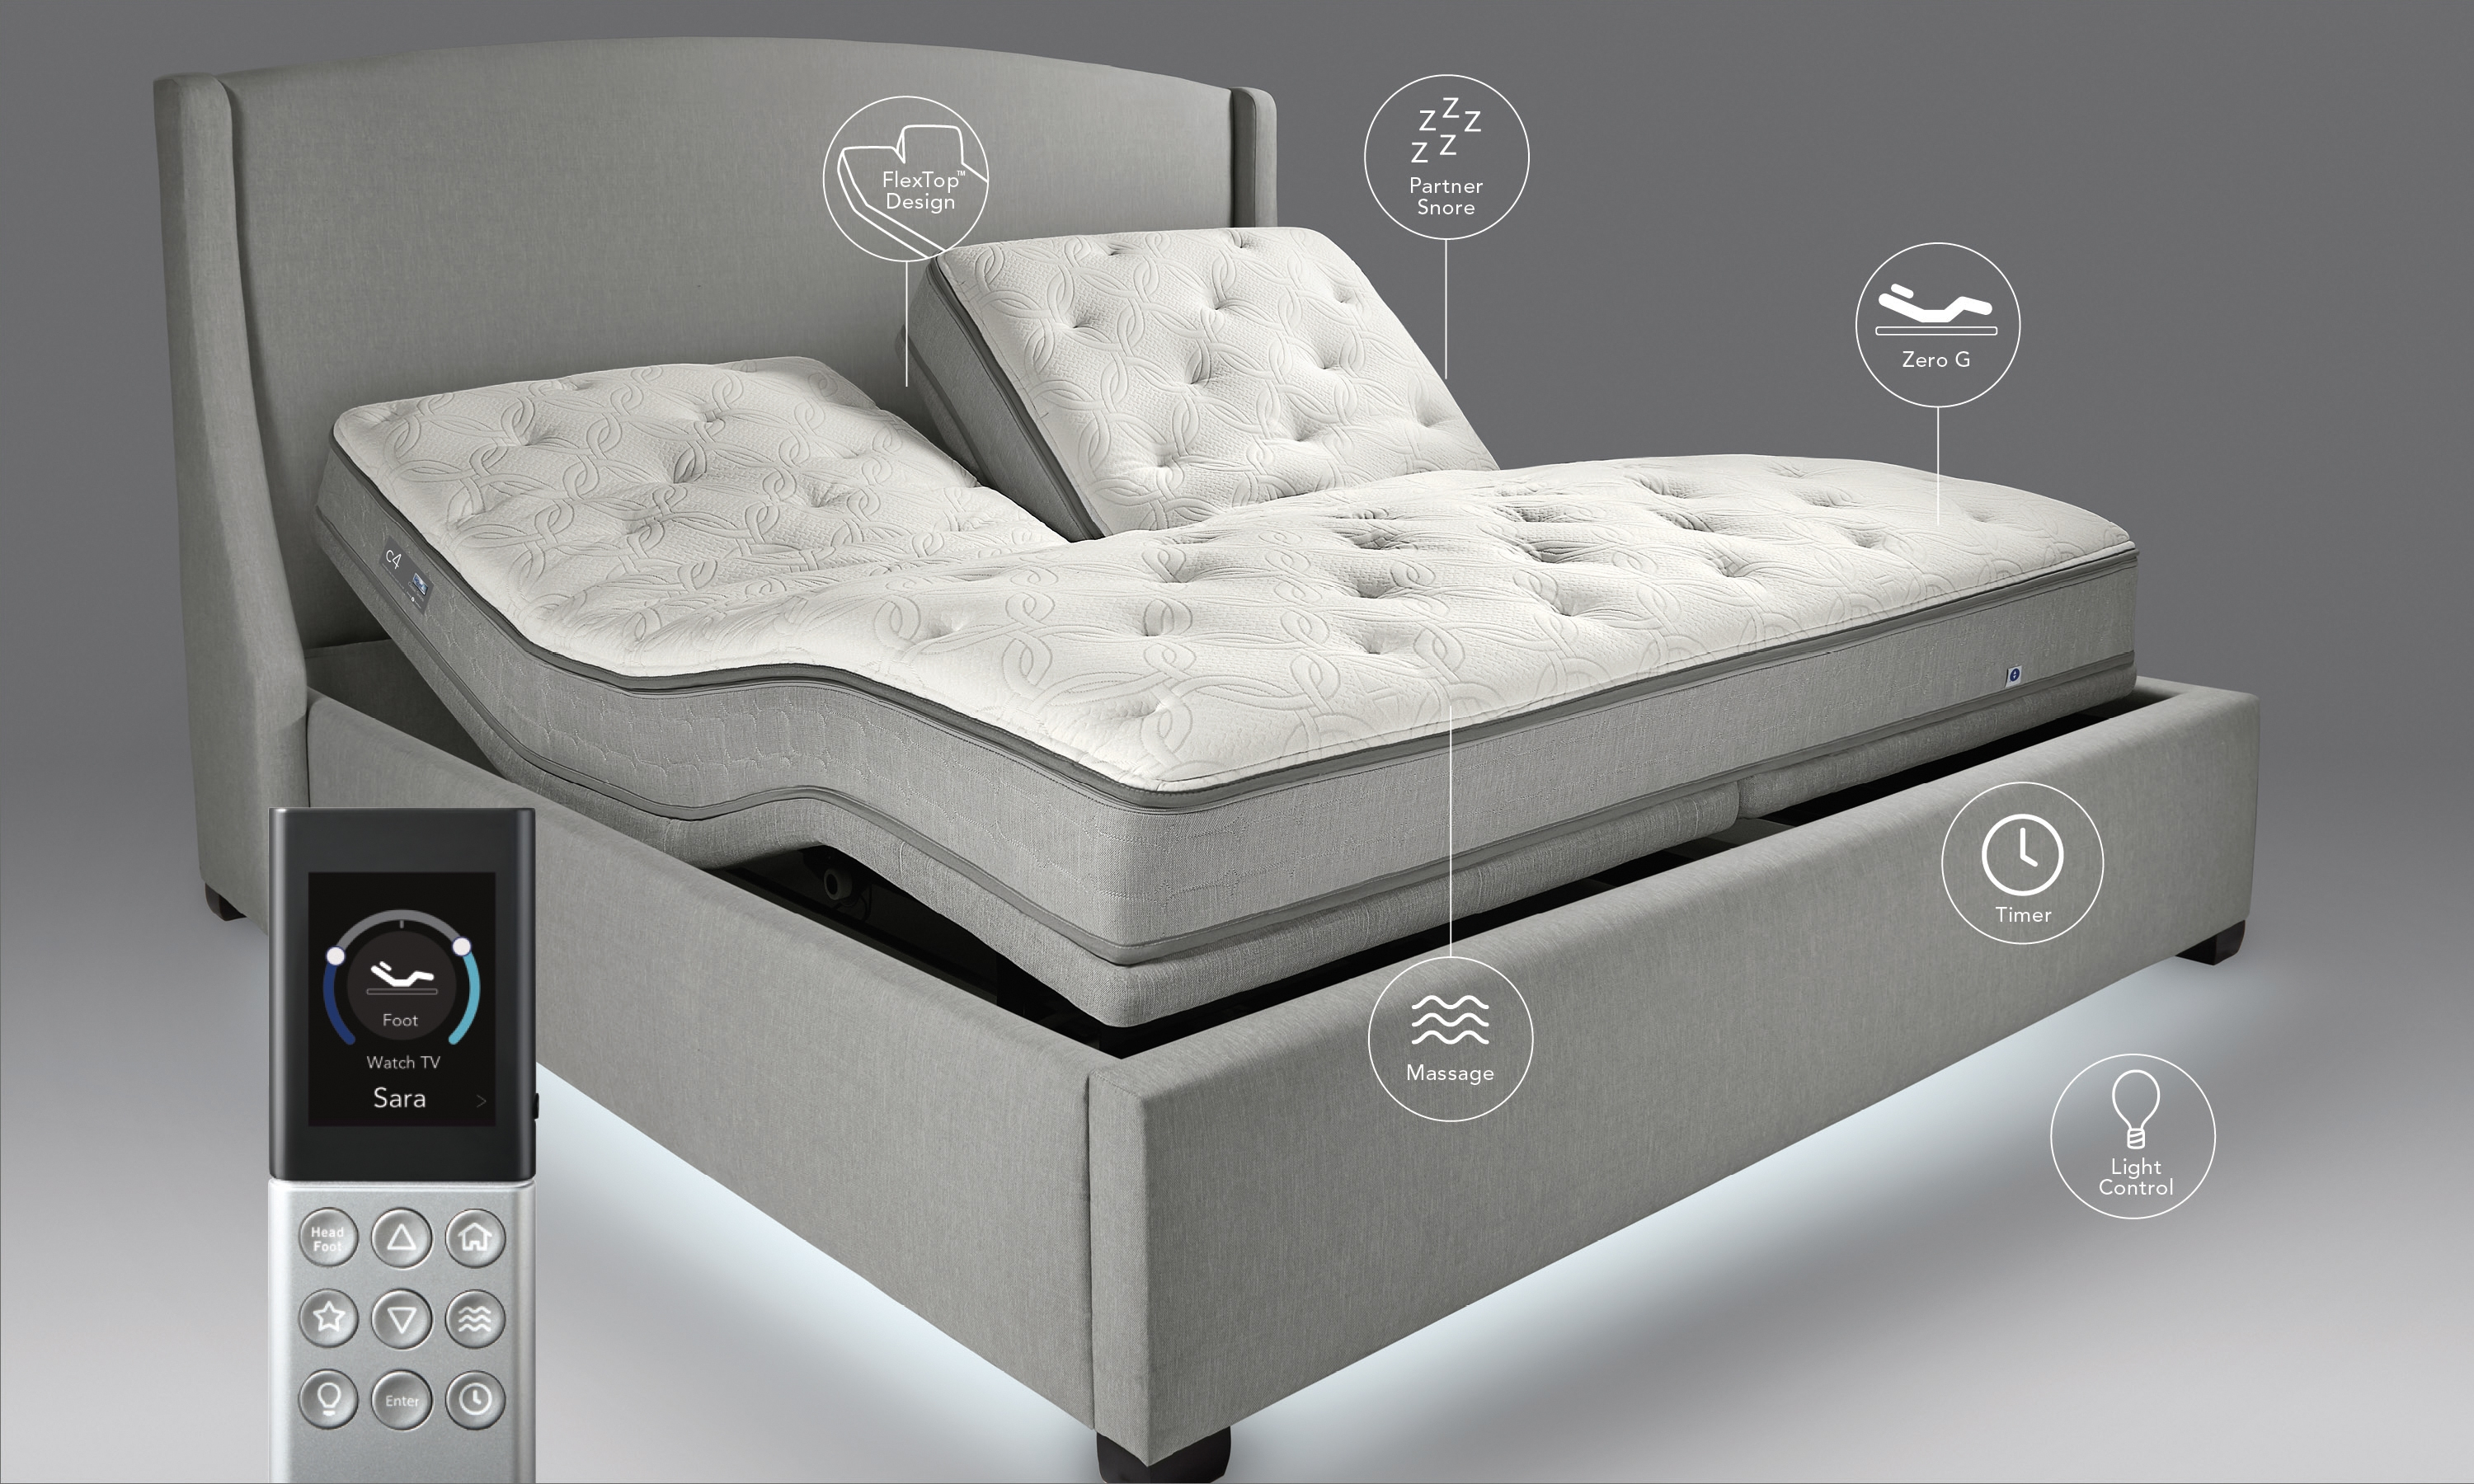 Permalink to Queen Size Bed Frame For Sleep Number Bed